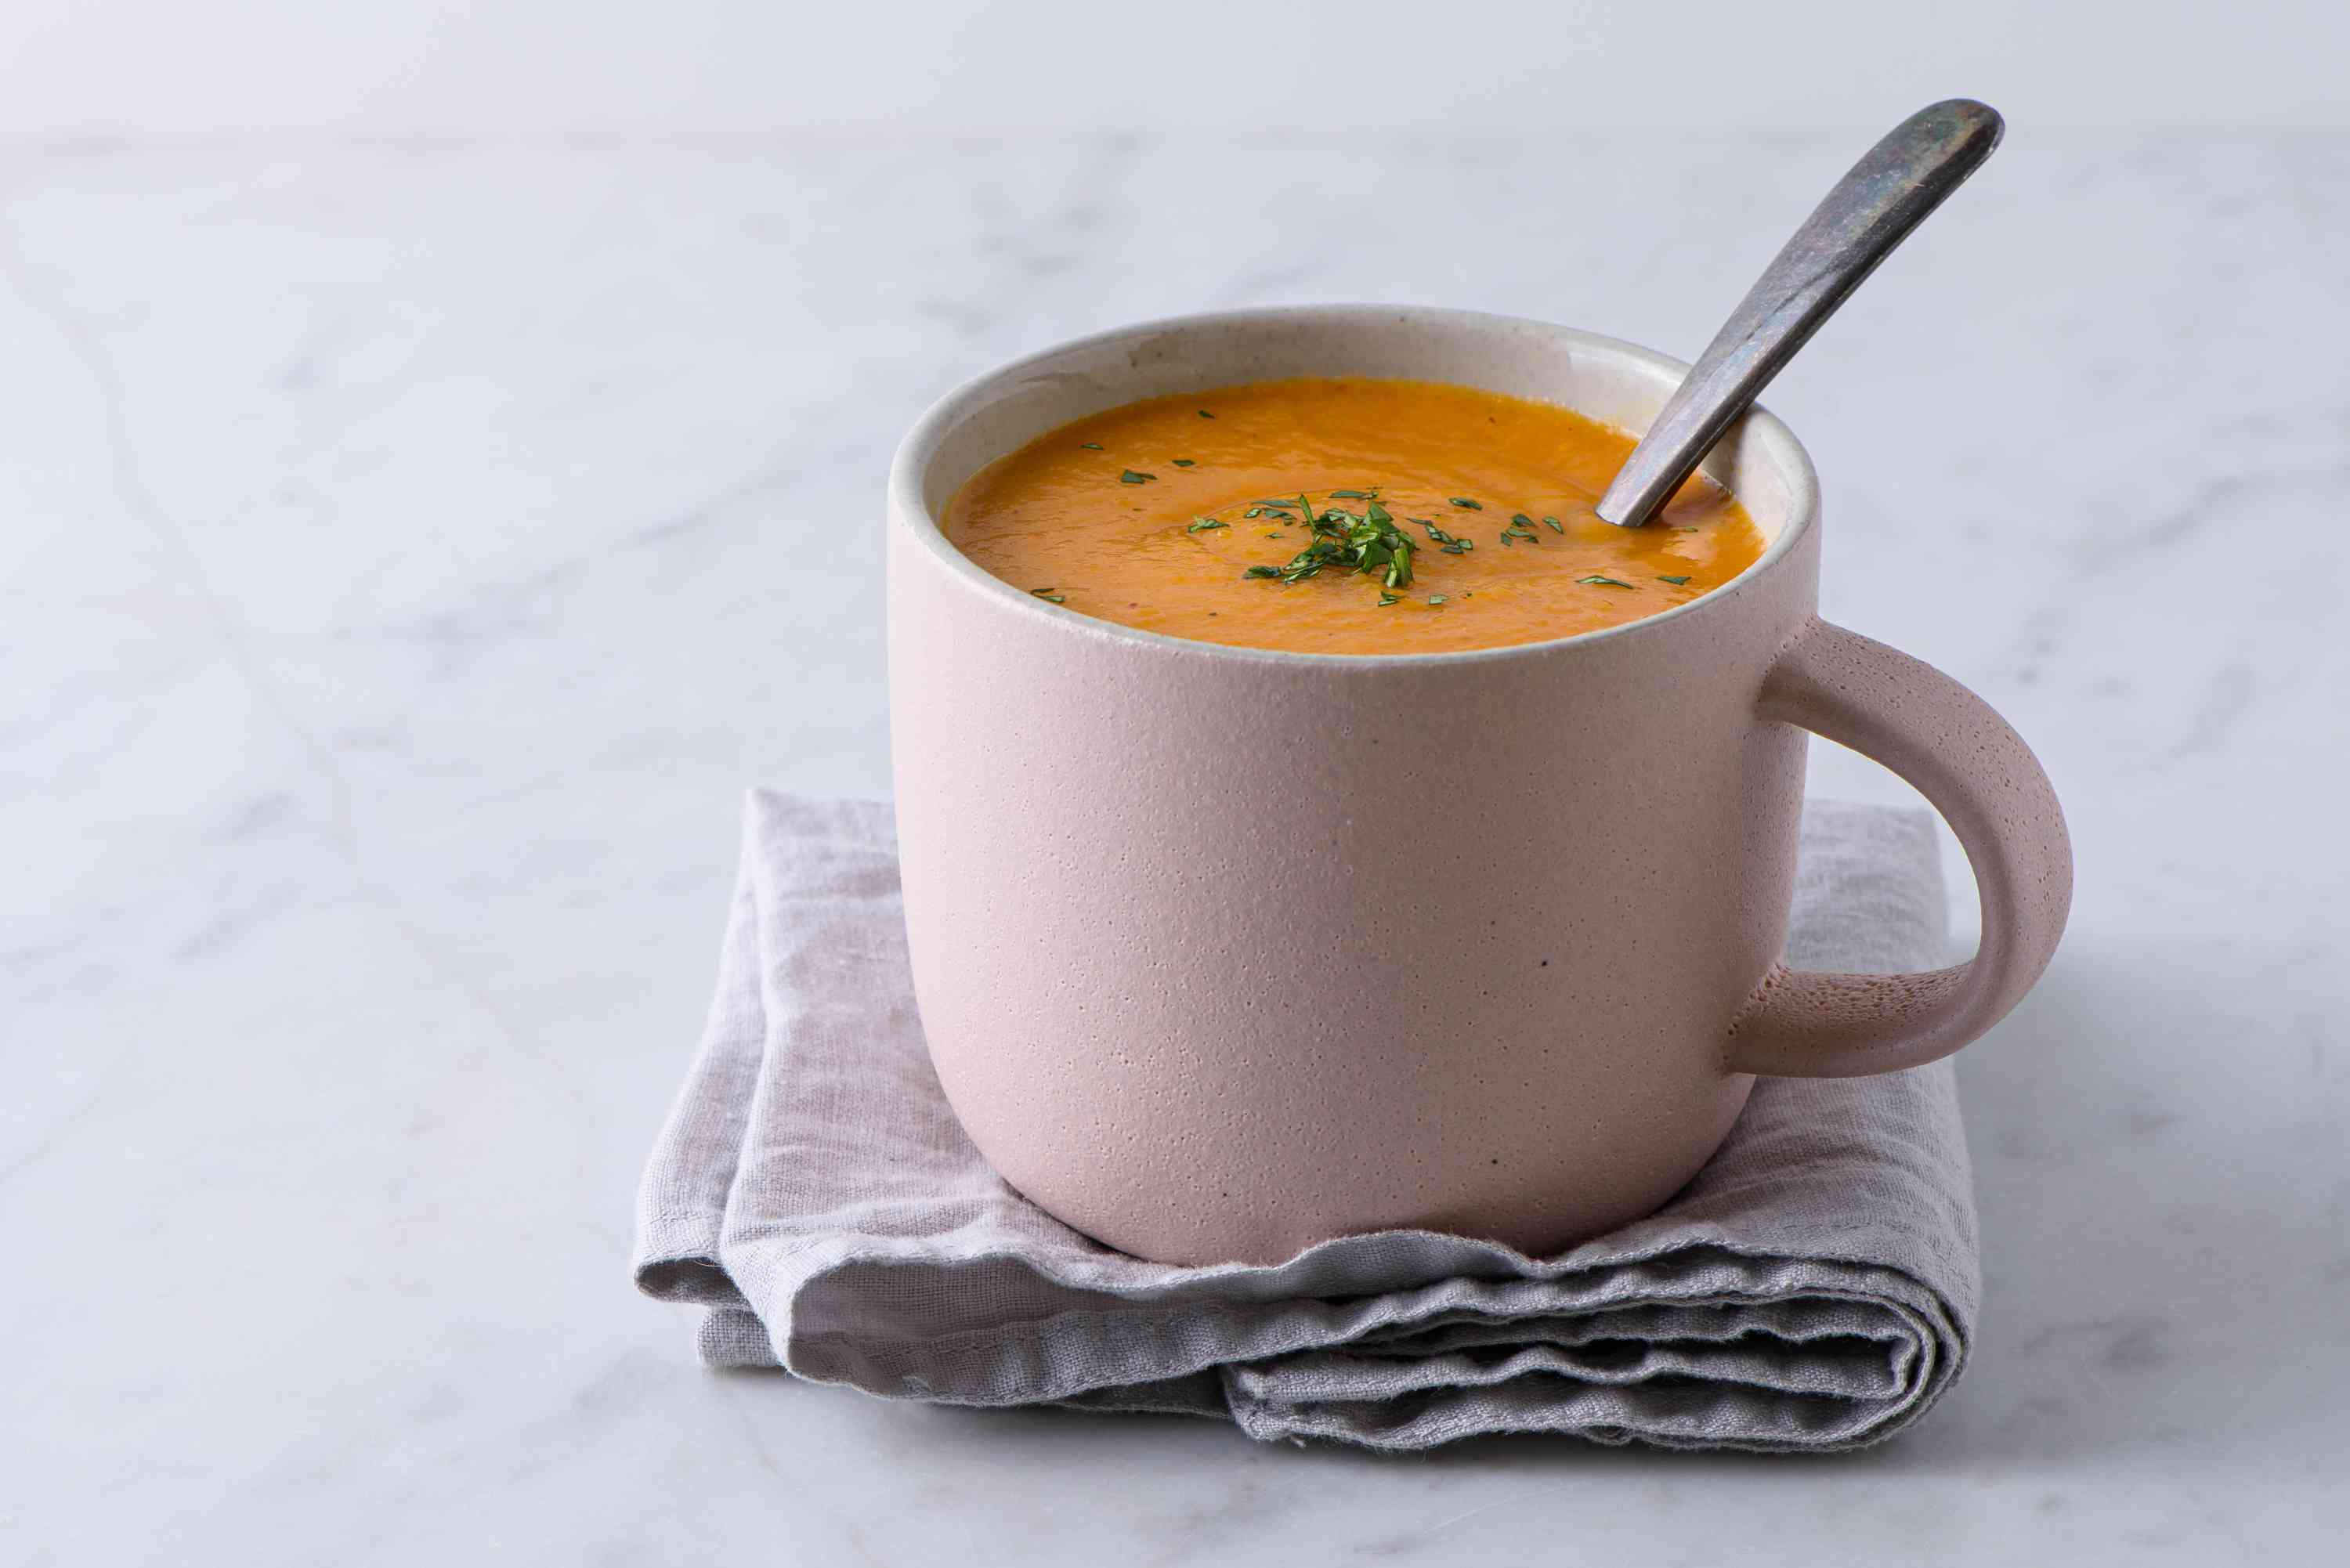 cup of soup in a mug